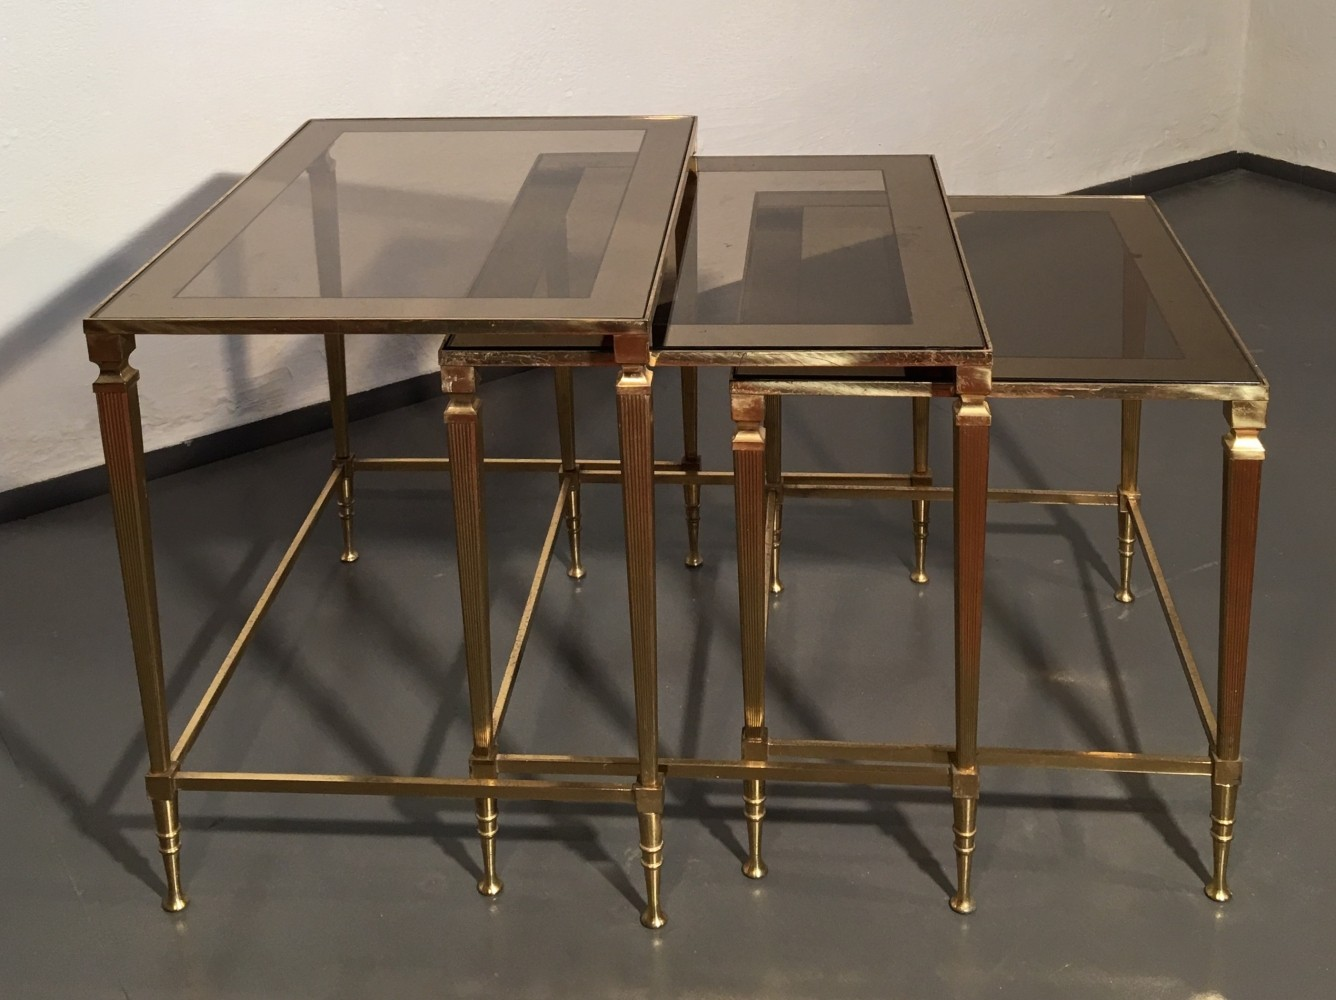 Nesting Tables brass & mirrored glass french nesting tablesmaison jansen | #62463